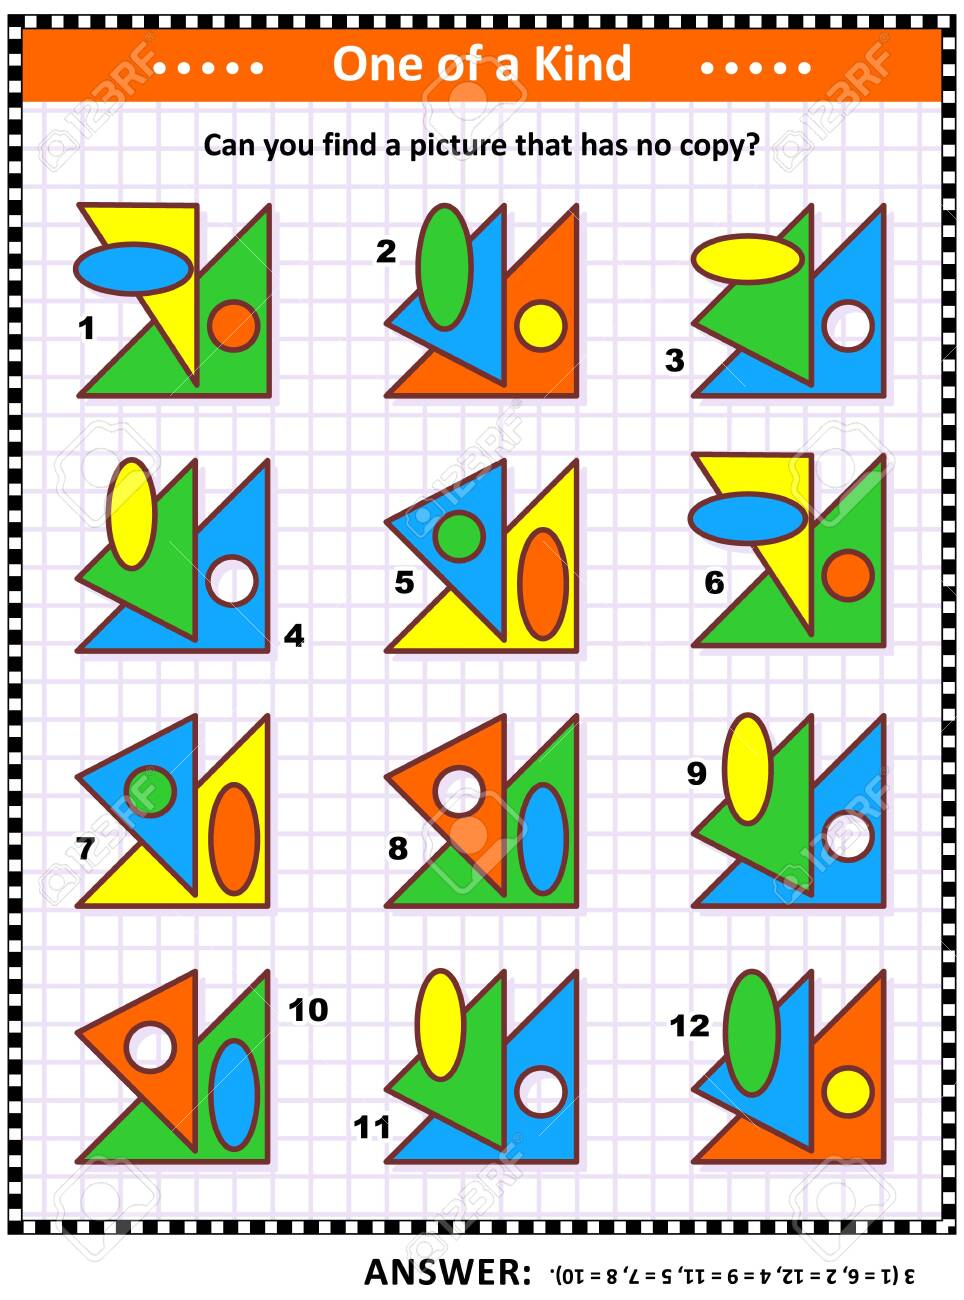 Iq Training Educational Math Puzzle For Kids And Adults With Royalty Free Cliparts Vectors And Stock Illustration Image 129961131